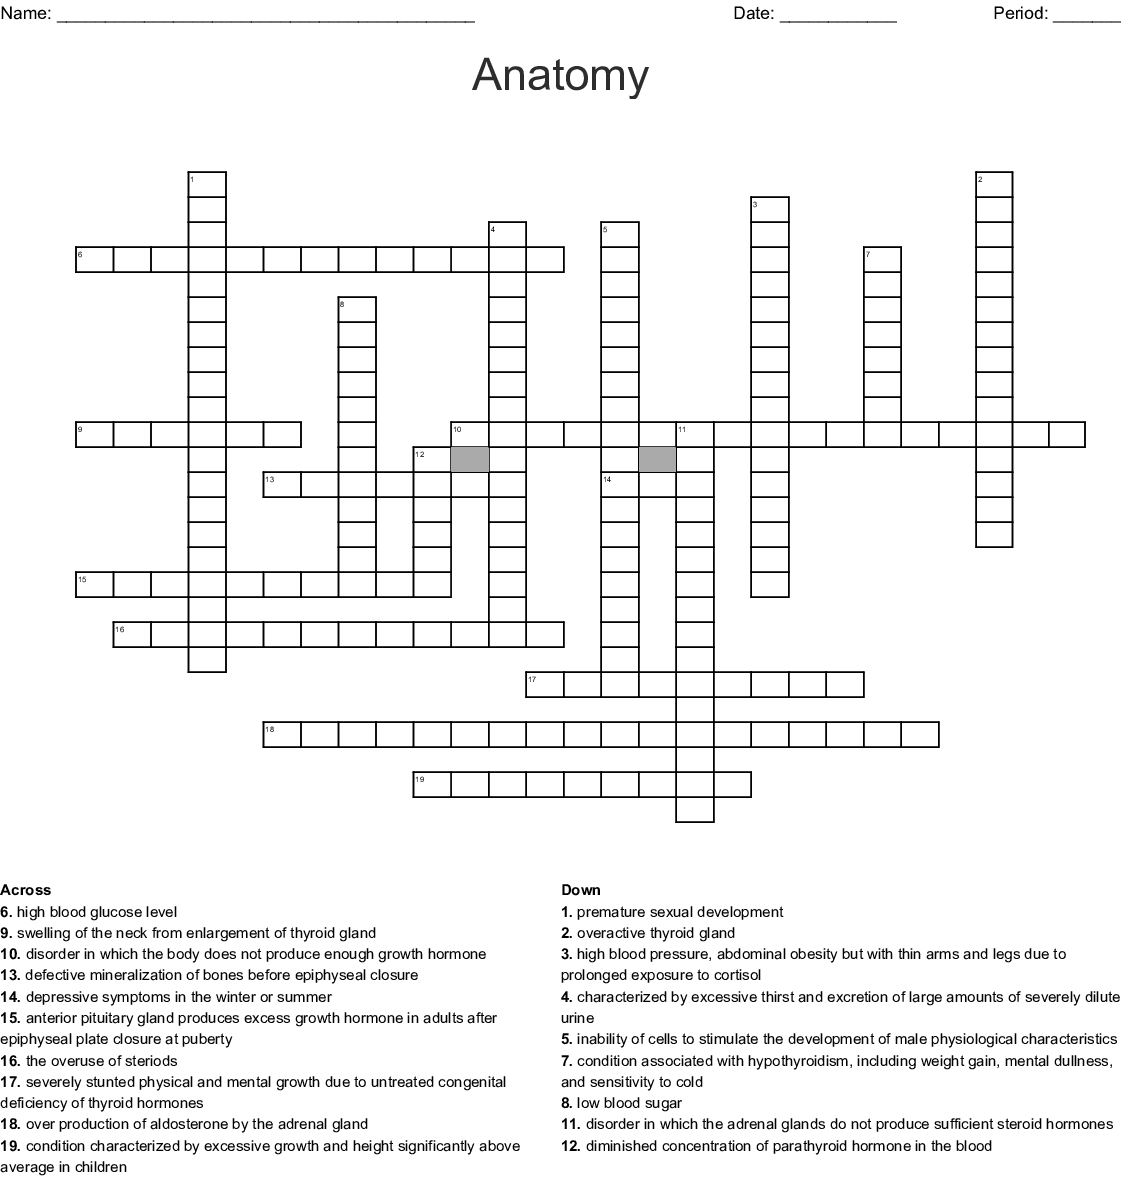 Disorders Of The Endocrine System Crossword